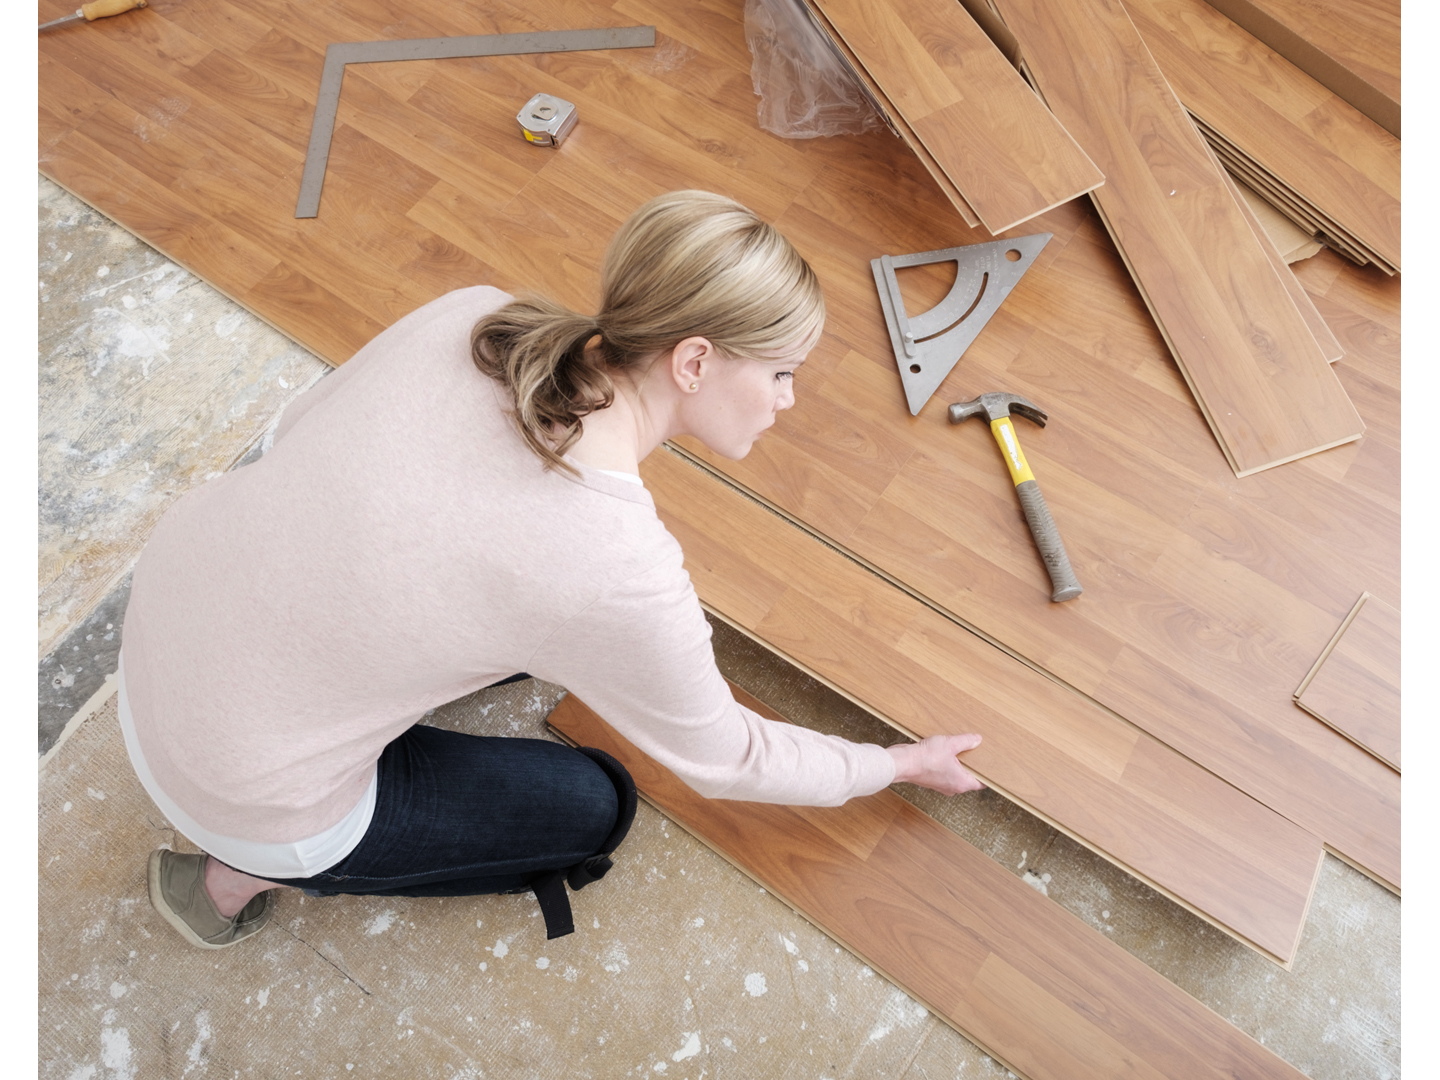 Formaldehyde Laminate Flooring a woman working in her home on a do it yourself project installing laminate A Woman Working In Her Home On A Do It Yourself Project Installing Laminate